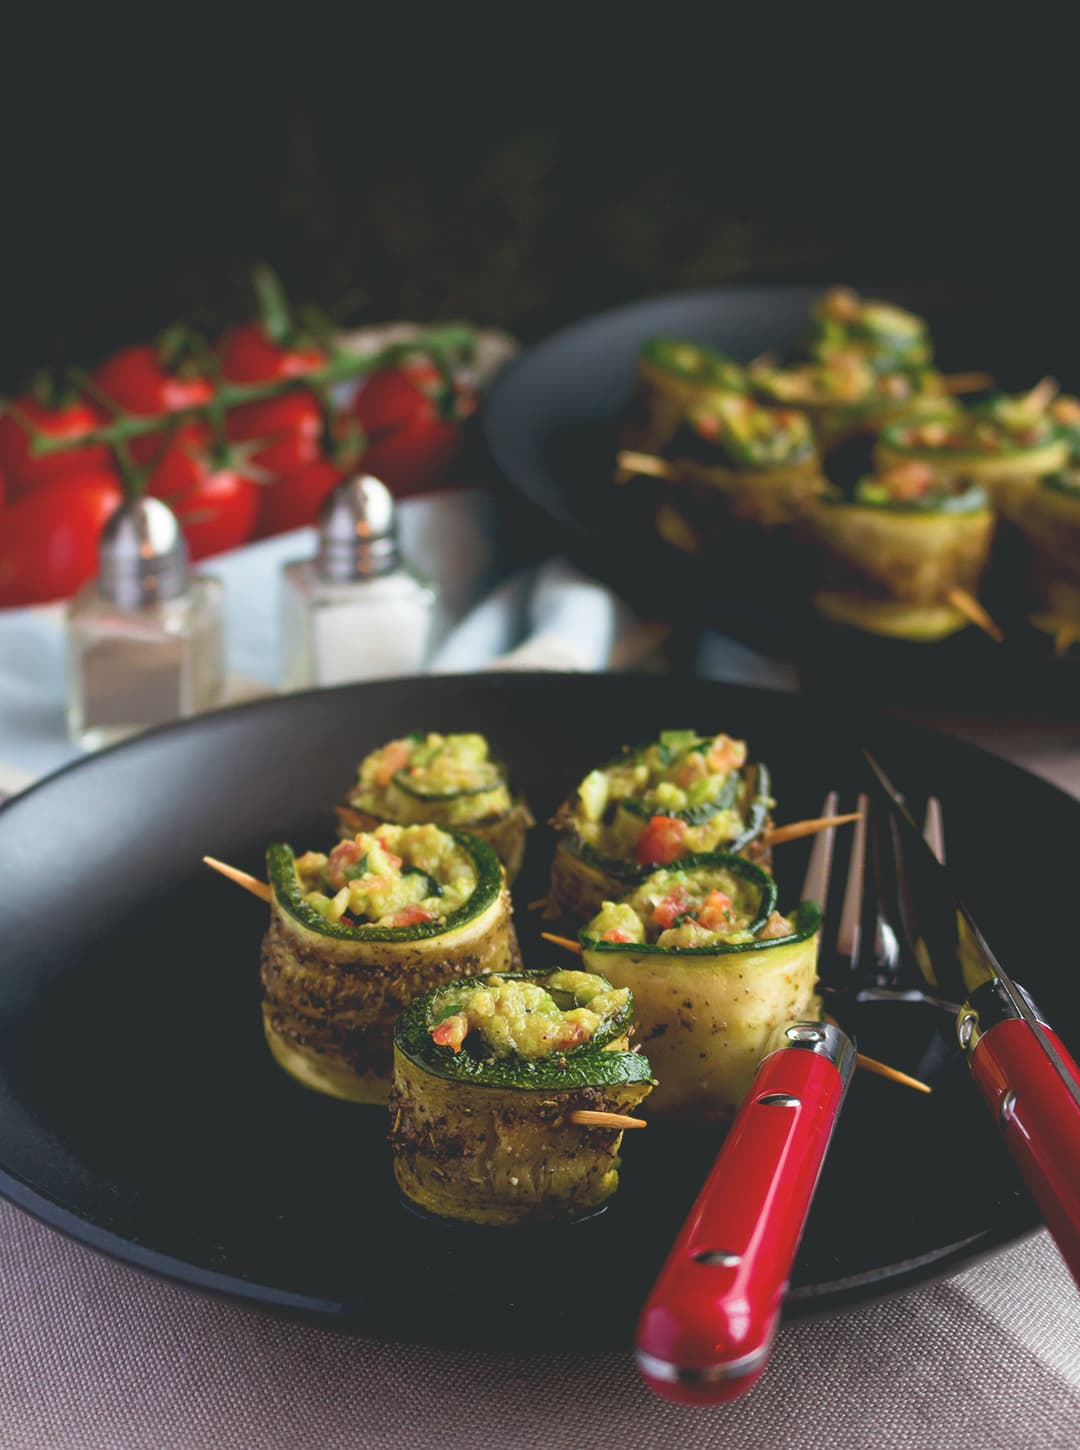 Roasted Zucchini Rolls with Guacamole - the perfect vegan appetizer for a movie night or a great first course in a Mexican styled menu! I love these. So simple, so delicious! | thehealthfulideas.com